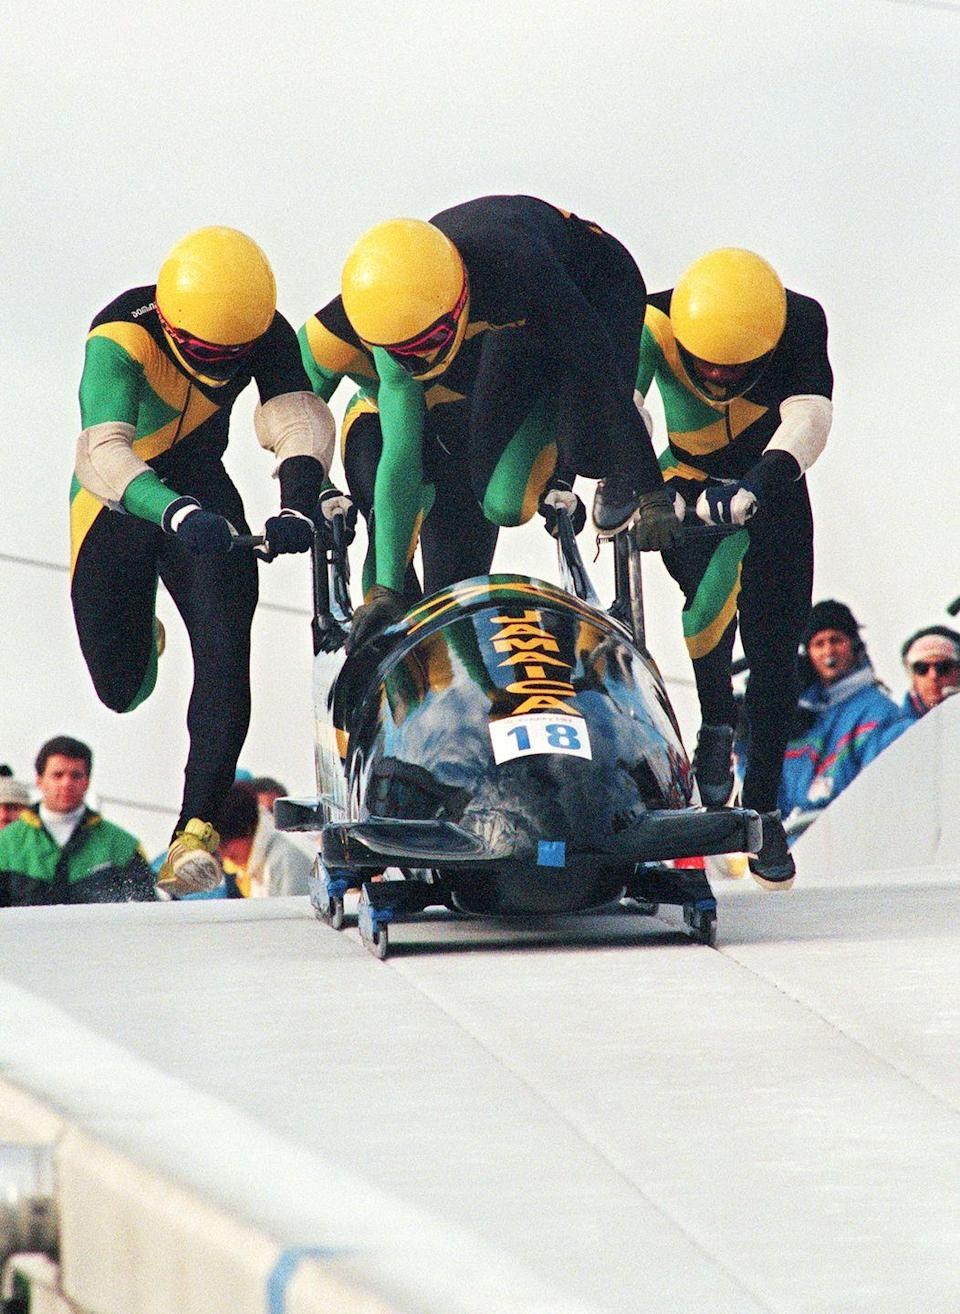 <p>The Jamaican bobsled team that inspired the Disney movie <em>Cool Runnings</em> made their Olympic debut at the 1988 Calgary games.</p>